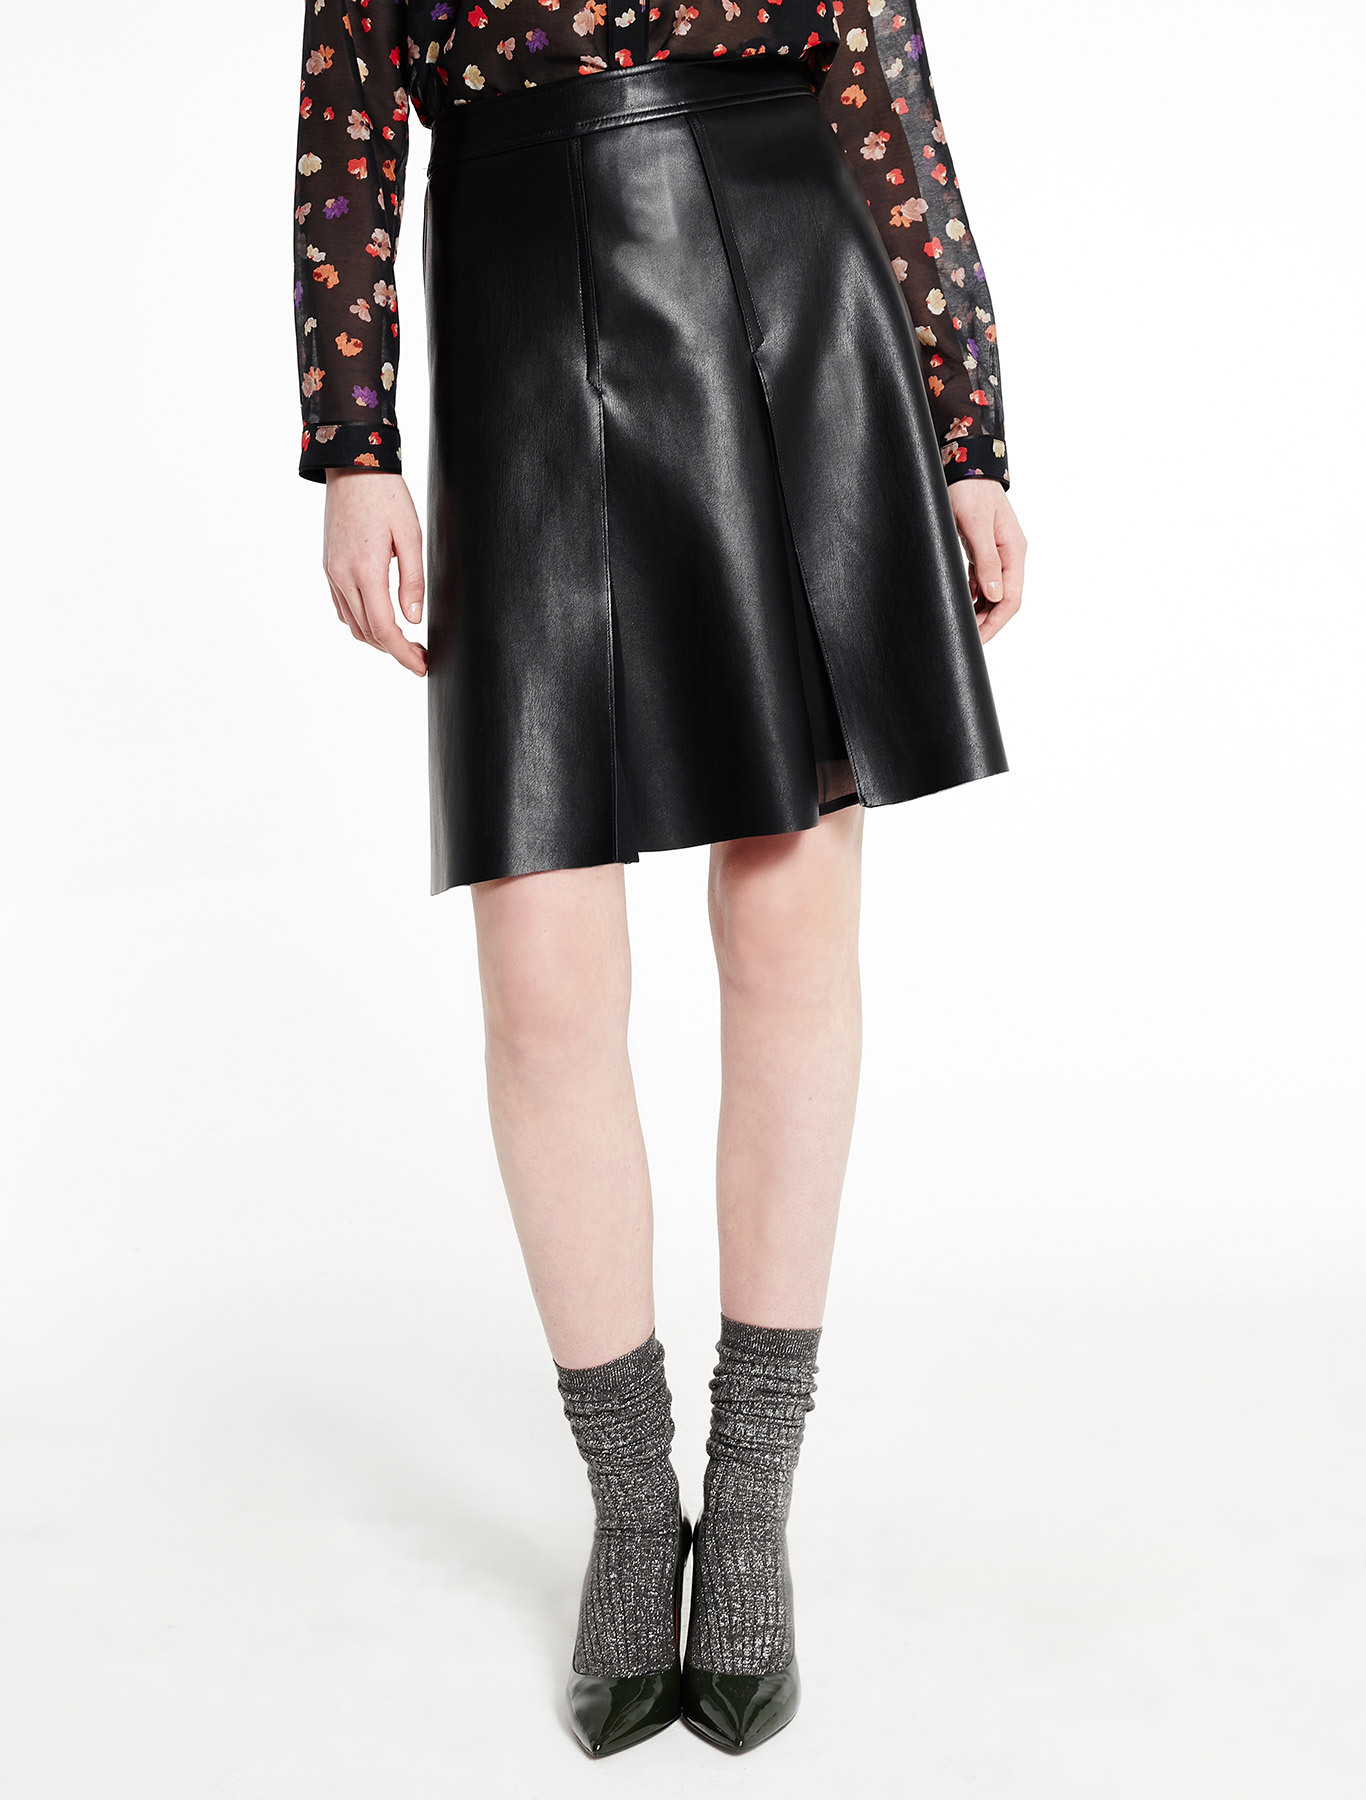 imitation leather skirt black marella